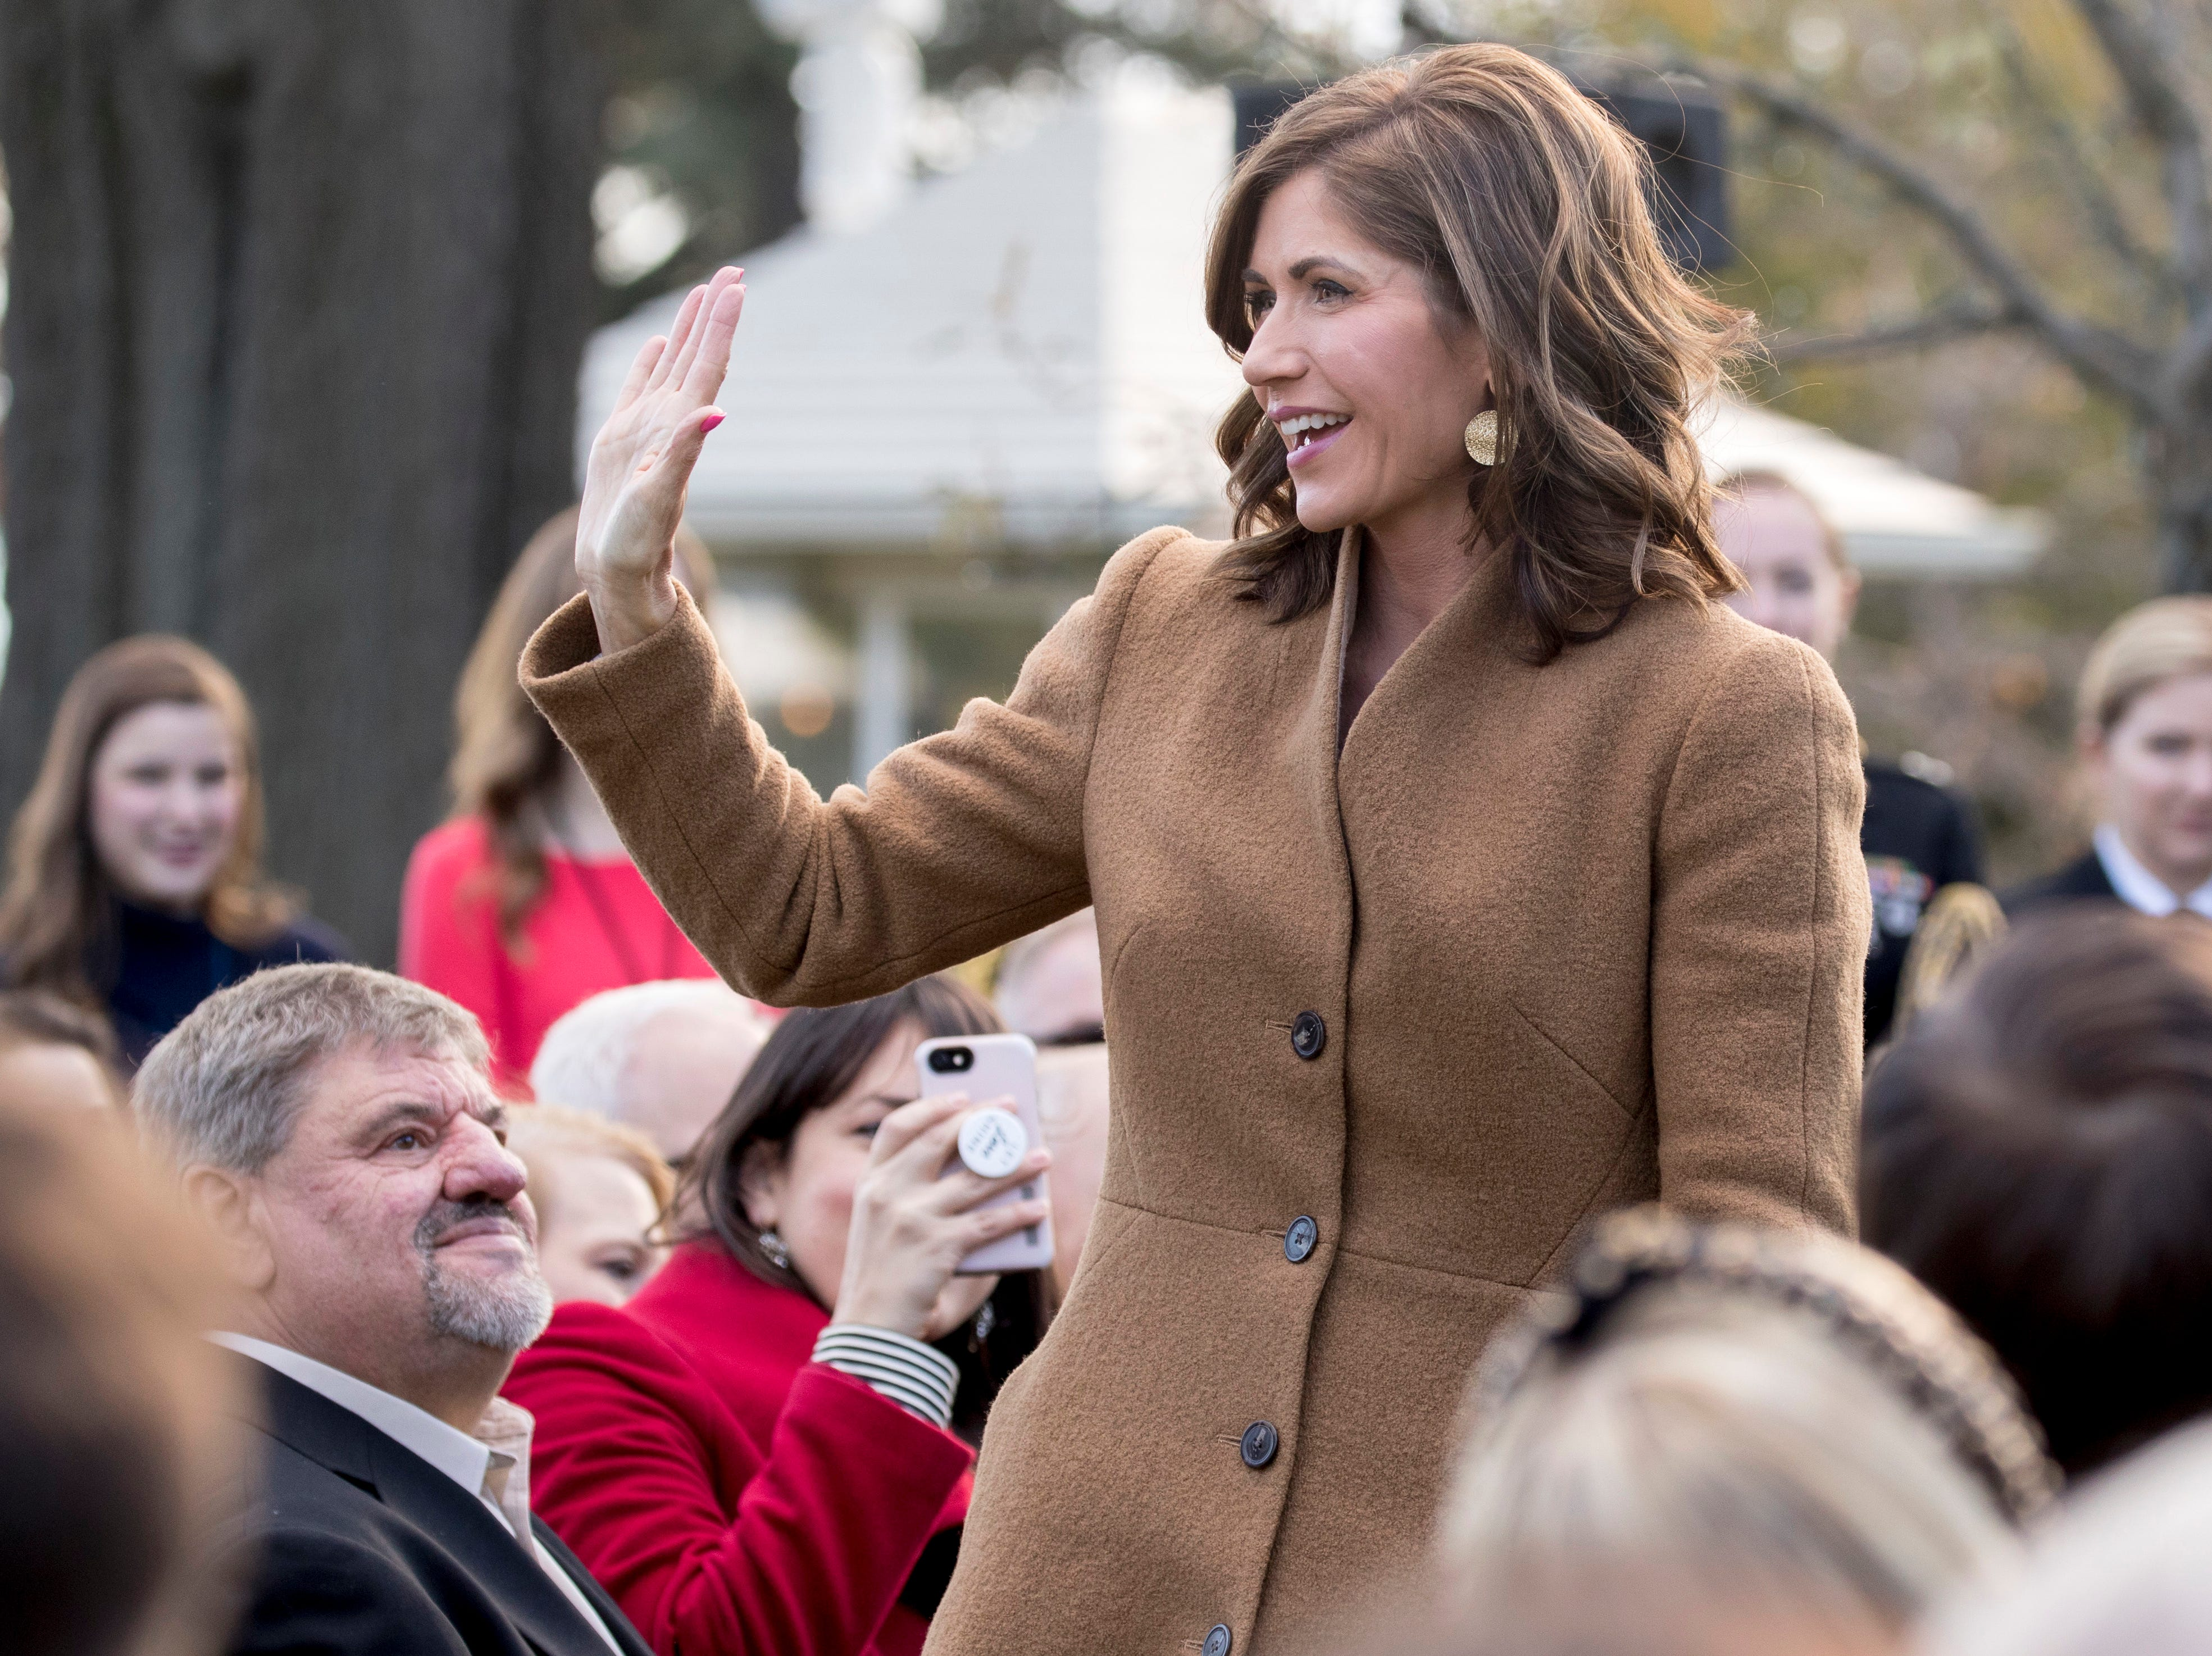 South Dakota Governor-elect Kristi Noem waves as she is recognized by President Donald Trump during a ceremony to pardon the National Thanksgiving Turkey in the Rose Garden of the White House in Washington, Tuesday, Nov. 20, 2018. (AP Photo/Andrew Harnik)